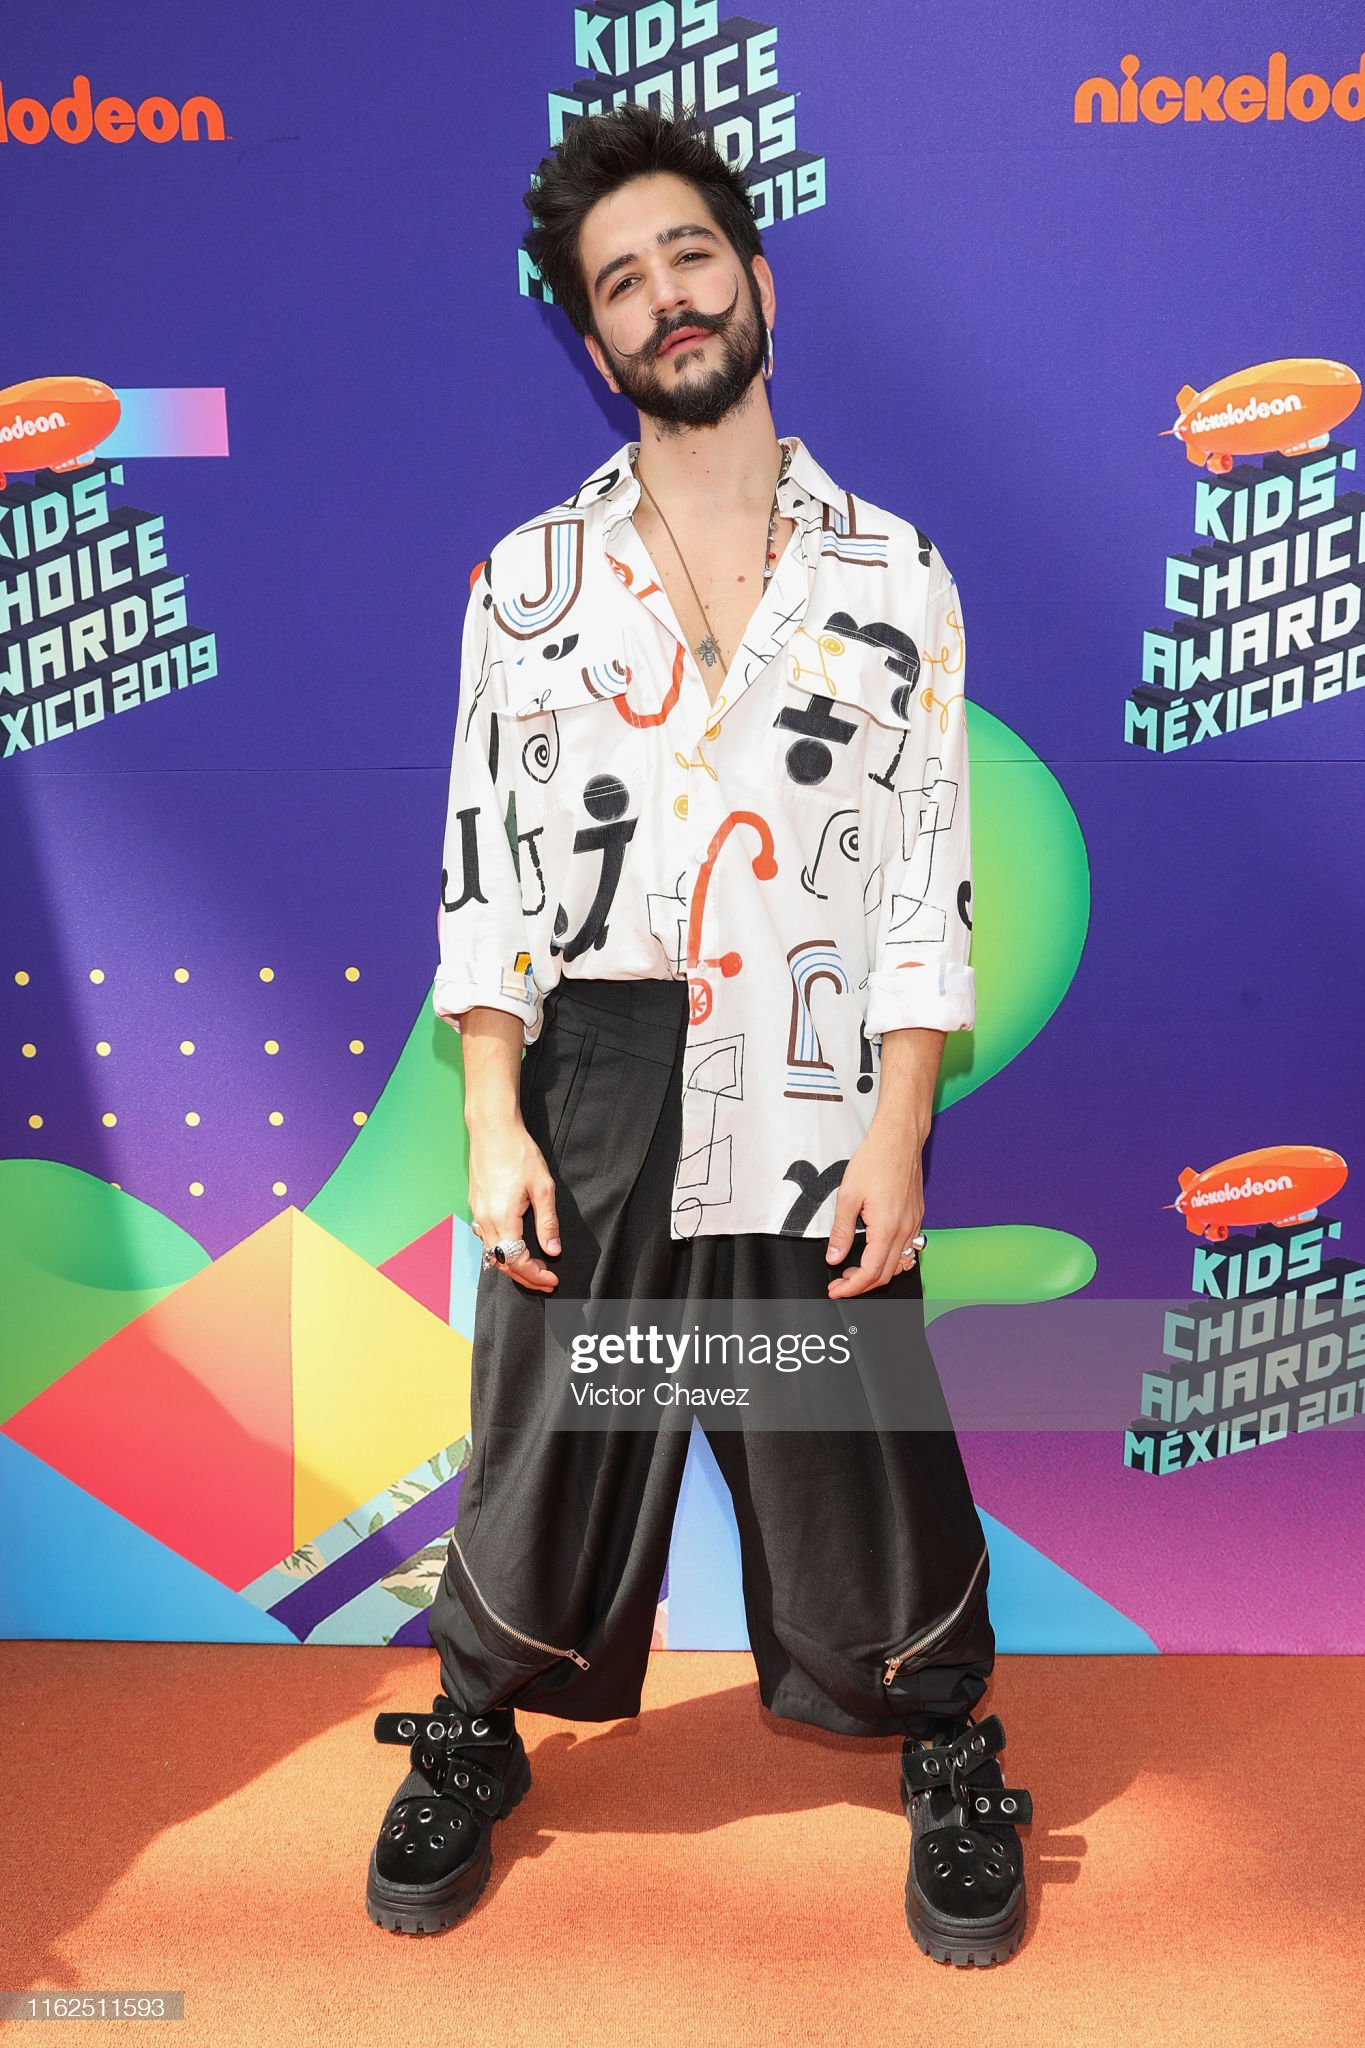 ¿Cuánto mide Camilo Echeverry? - Altura  Camilo-echeverry-attends-the-nickelodeon-kidss-choice-awards-mexico-picture-id1162511593?s=2048x2048